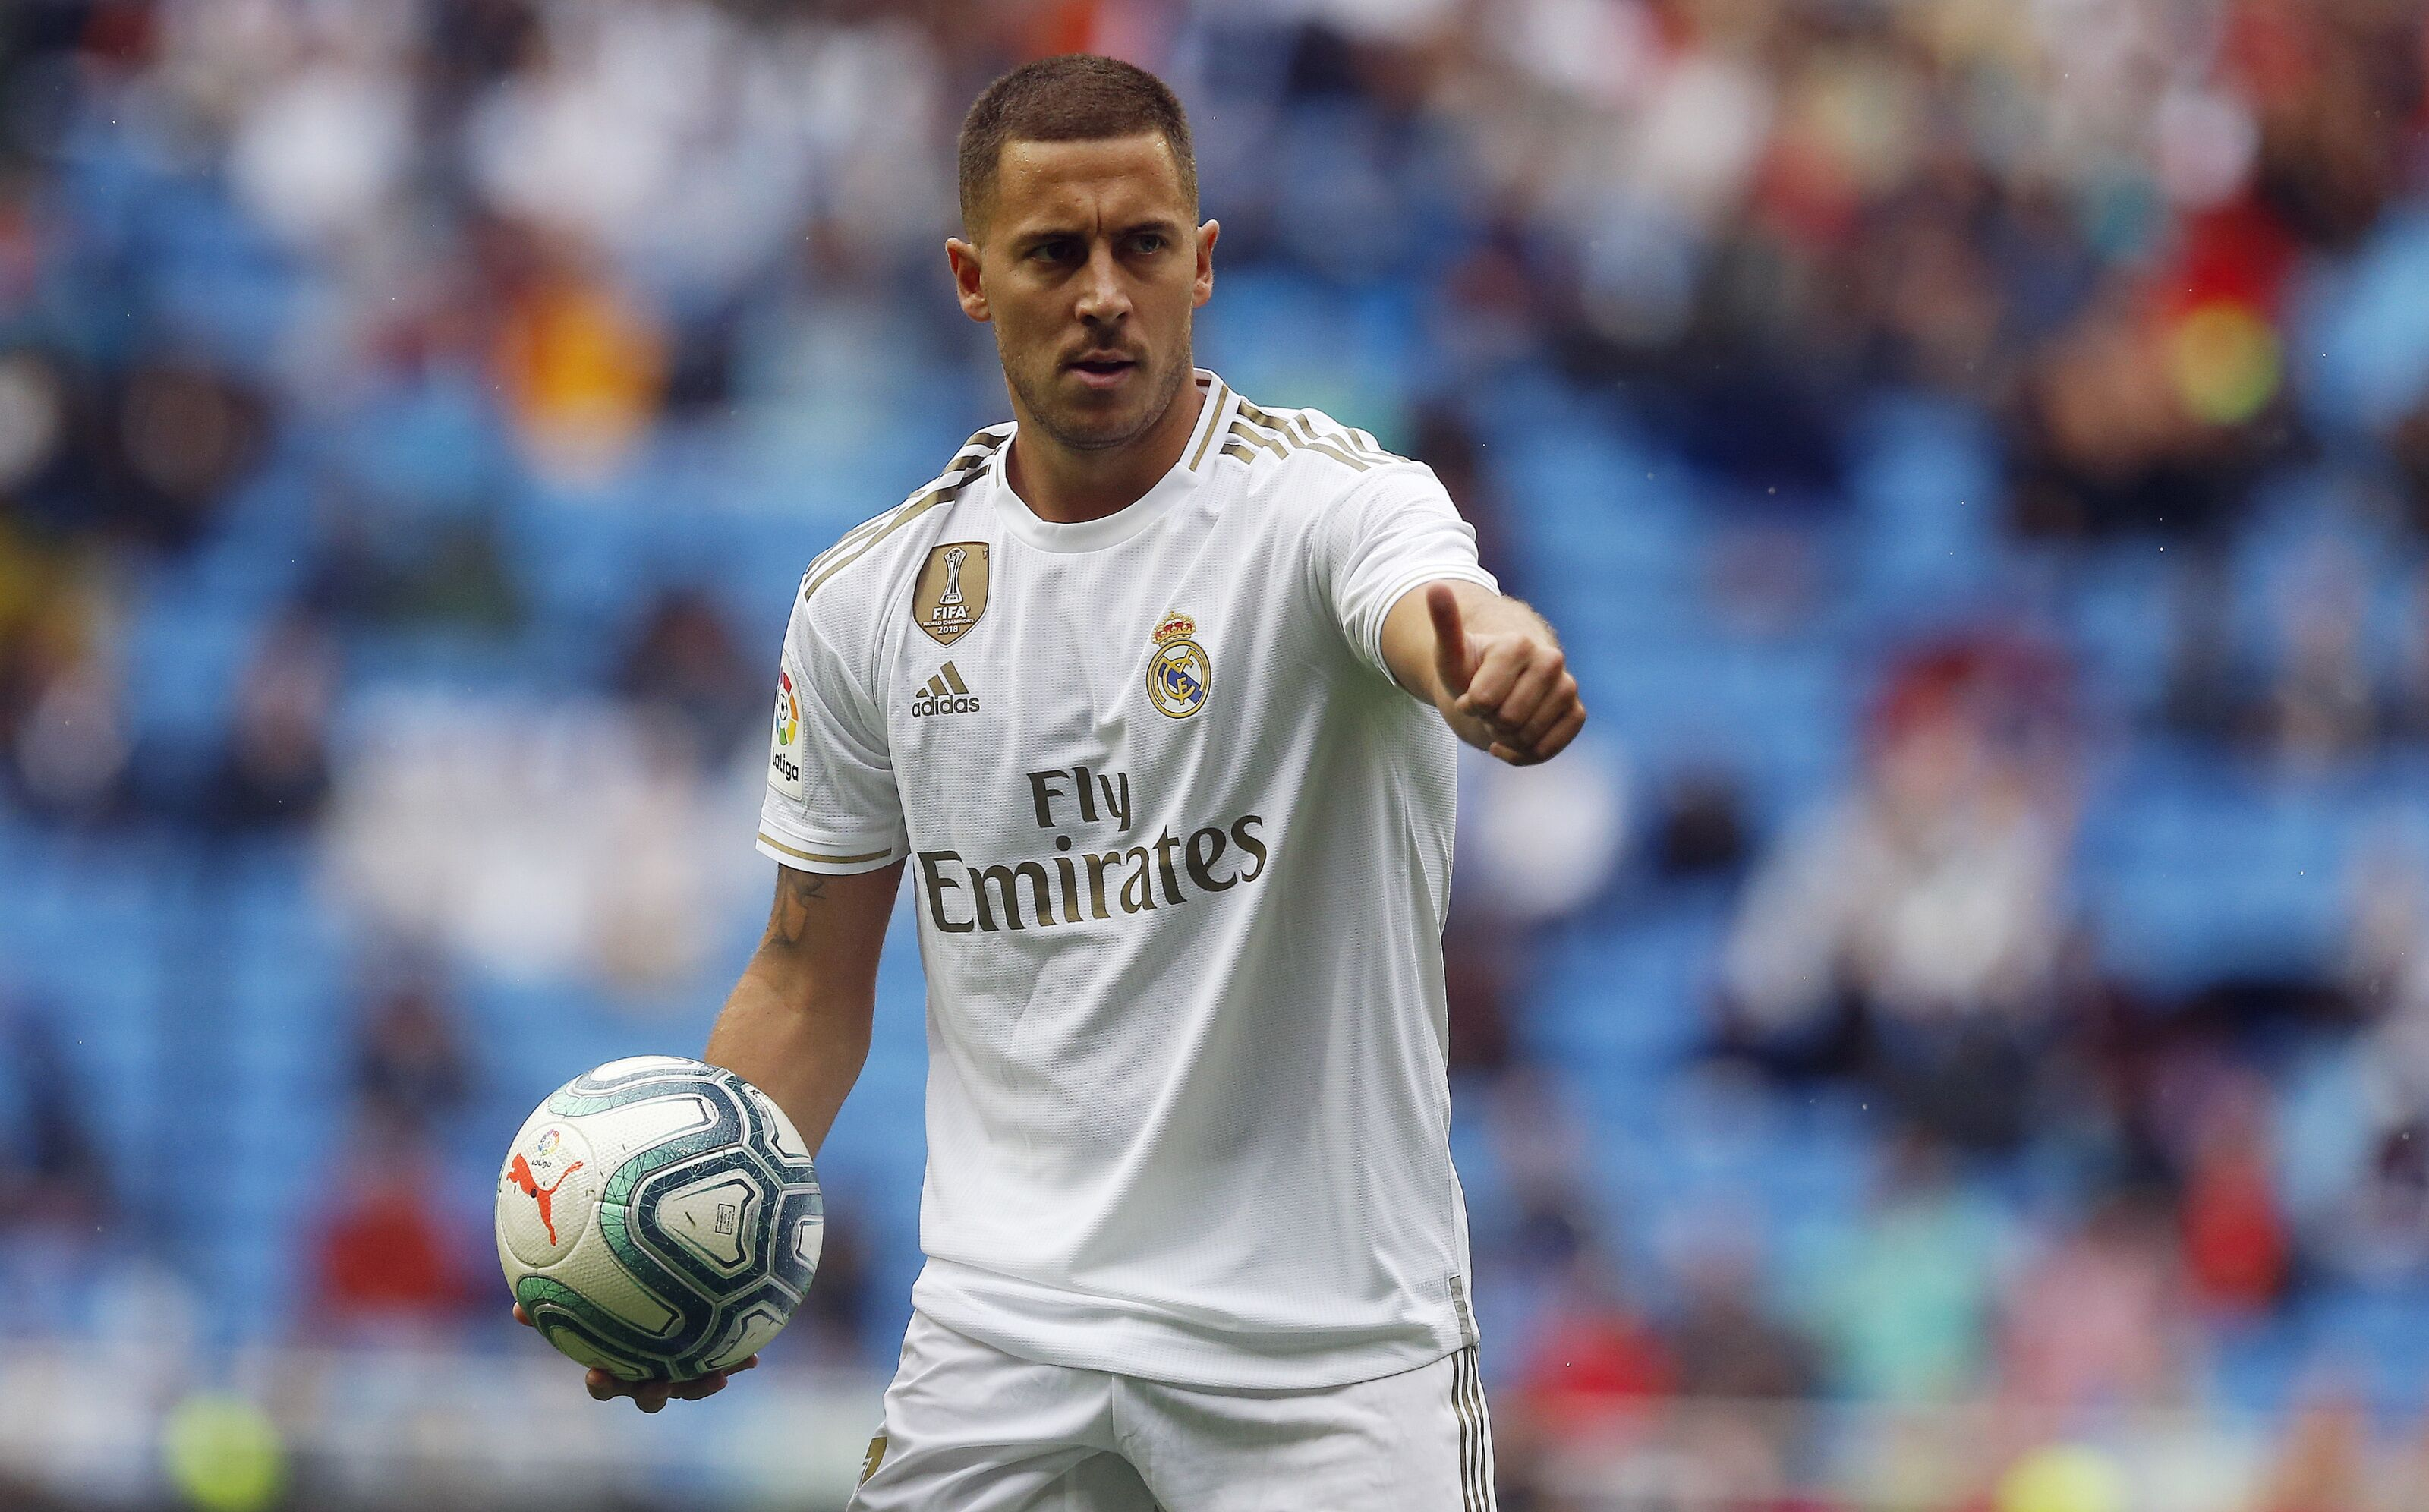 Real Madrid vs. Levante 4 Key Stats: Eden Hazard's impact as a substitute